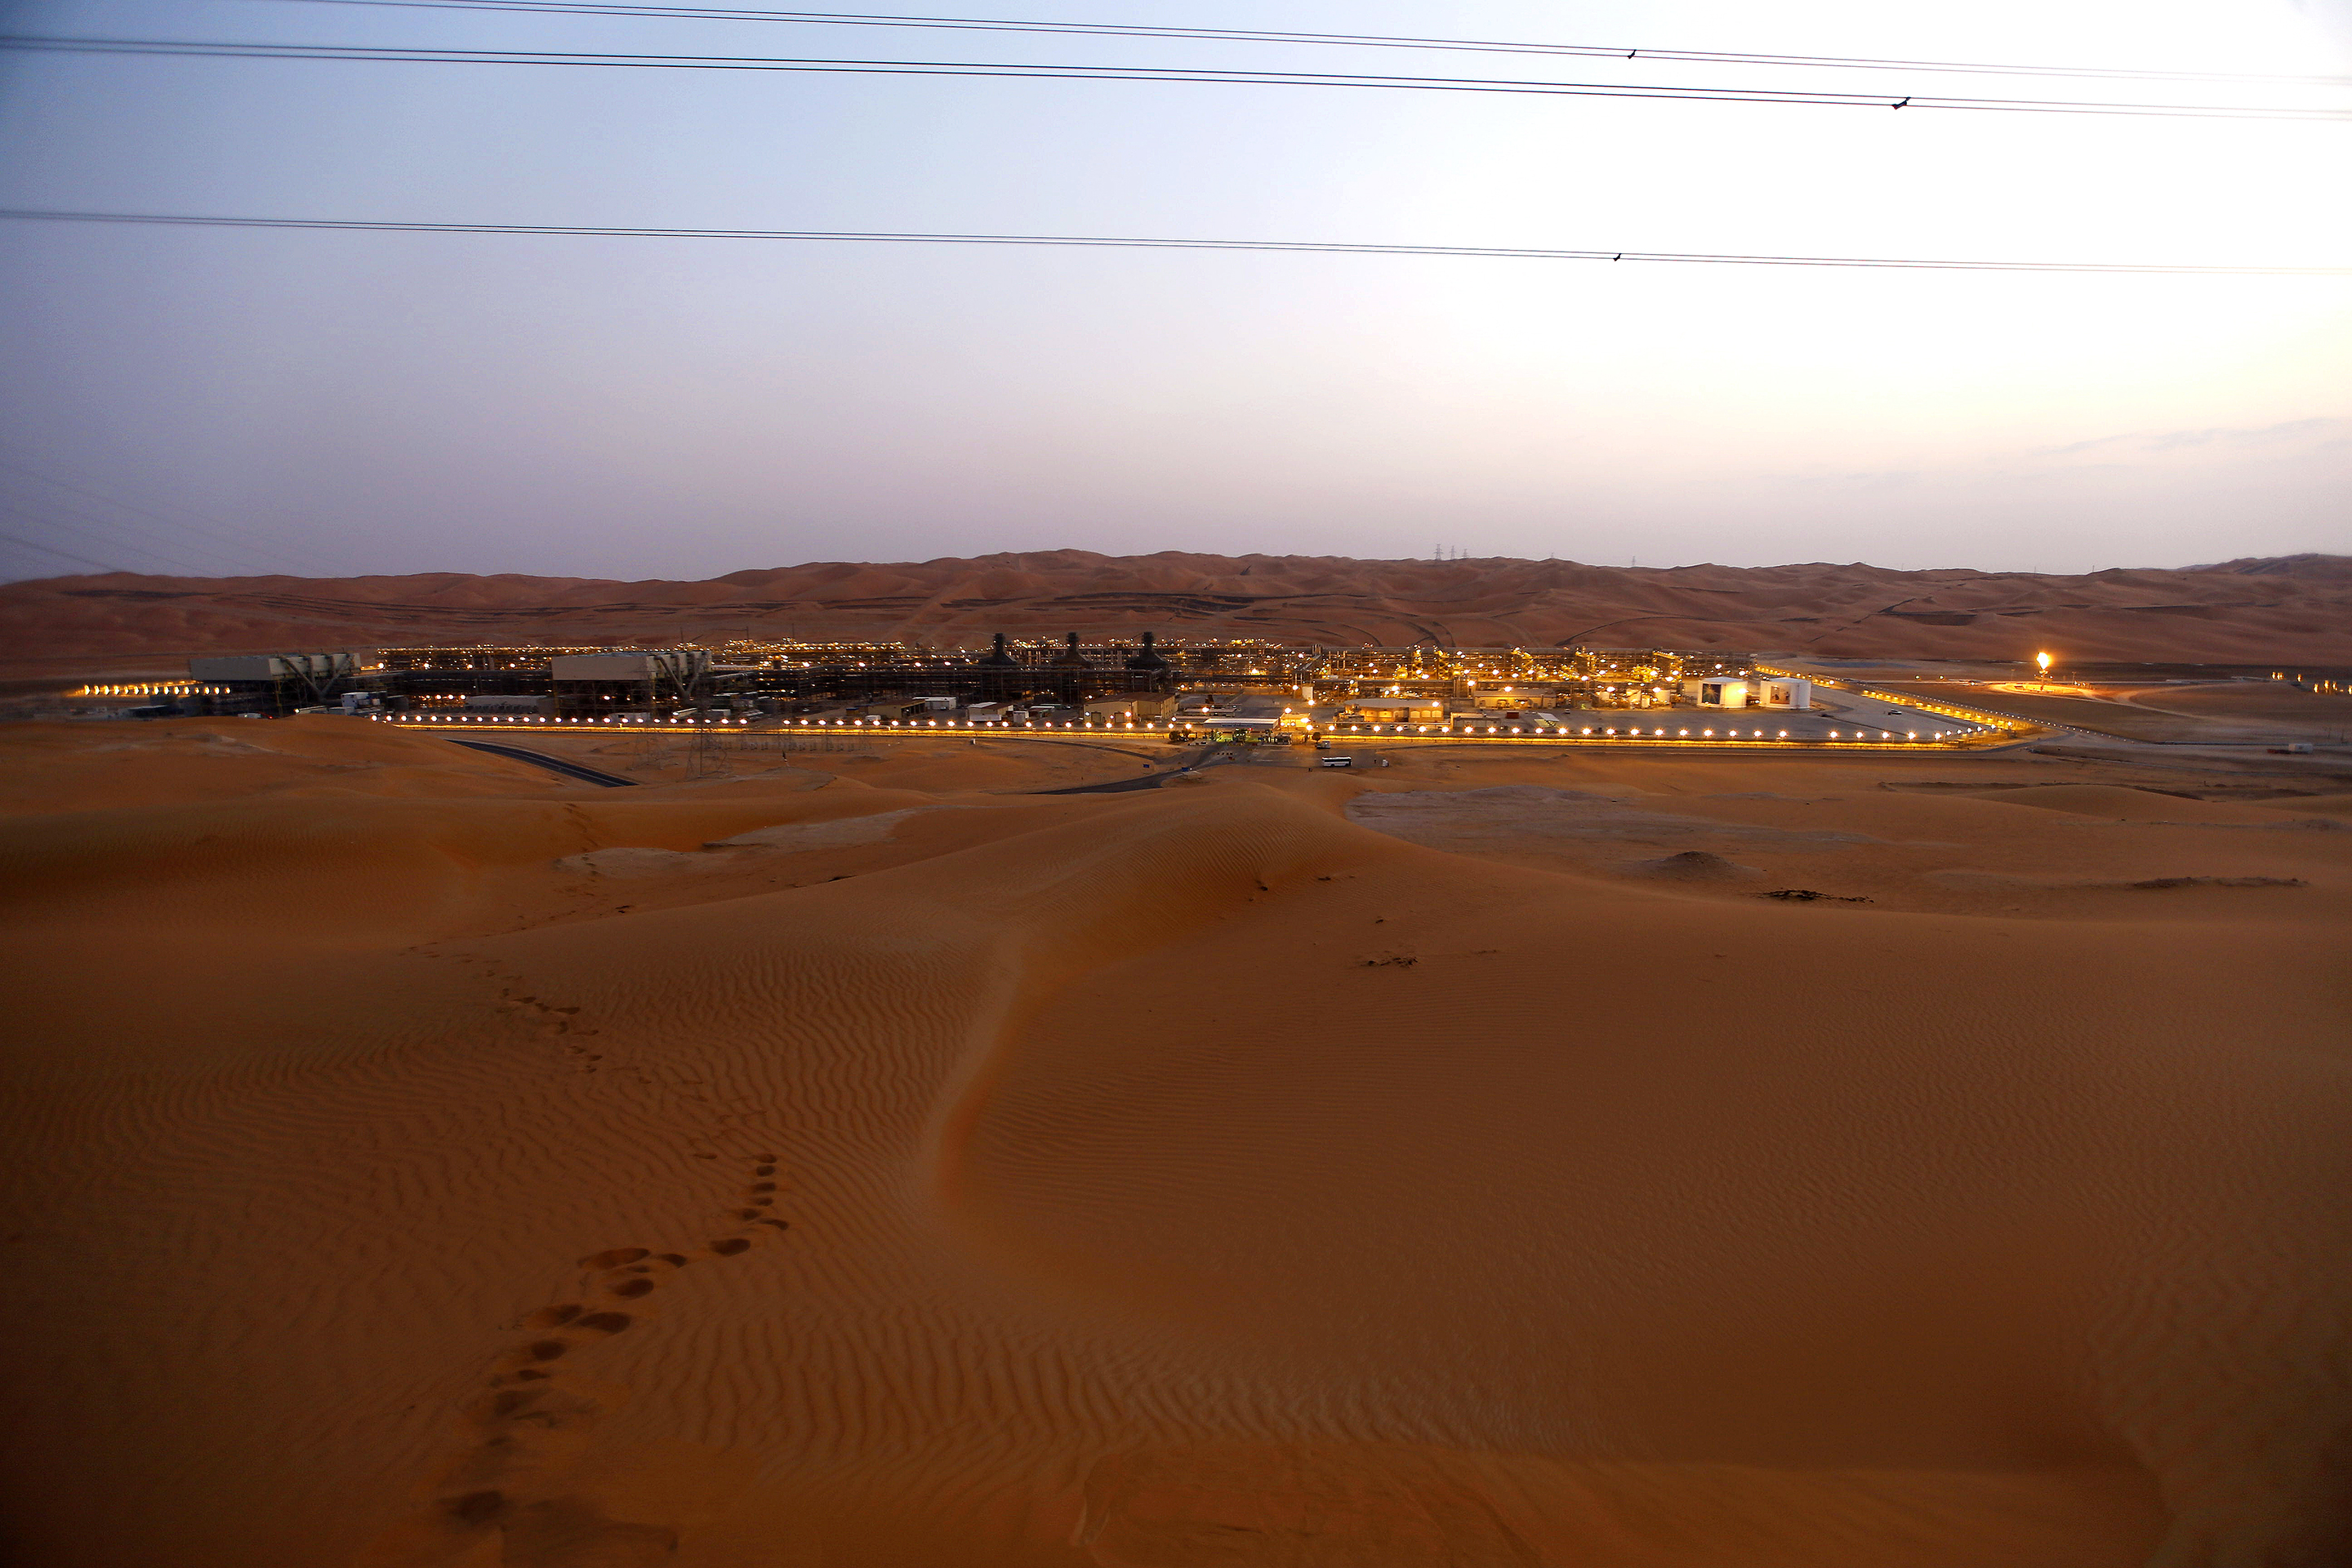 A Saudi Aramco gas-oil separation plant in the remote Empty Quarter desert.